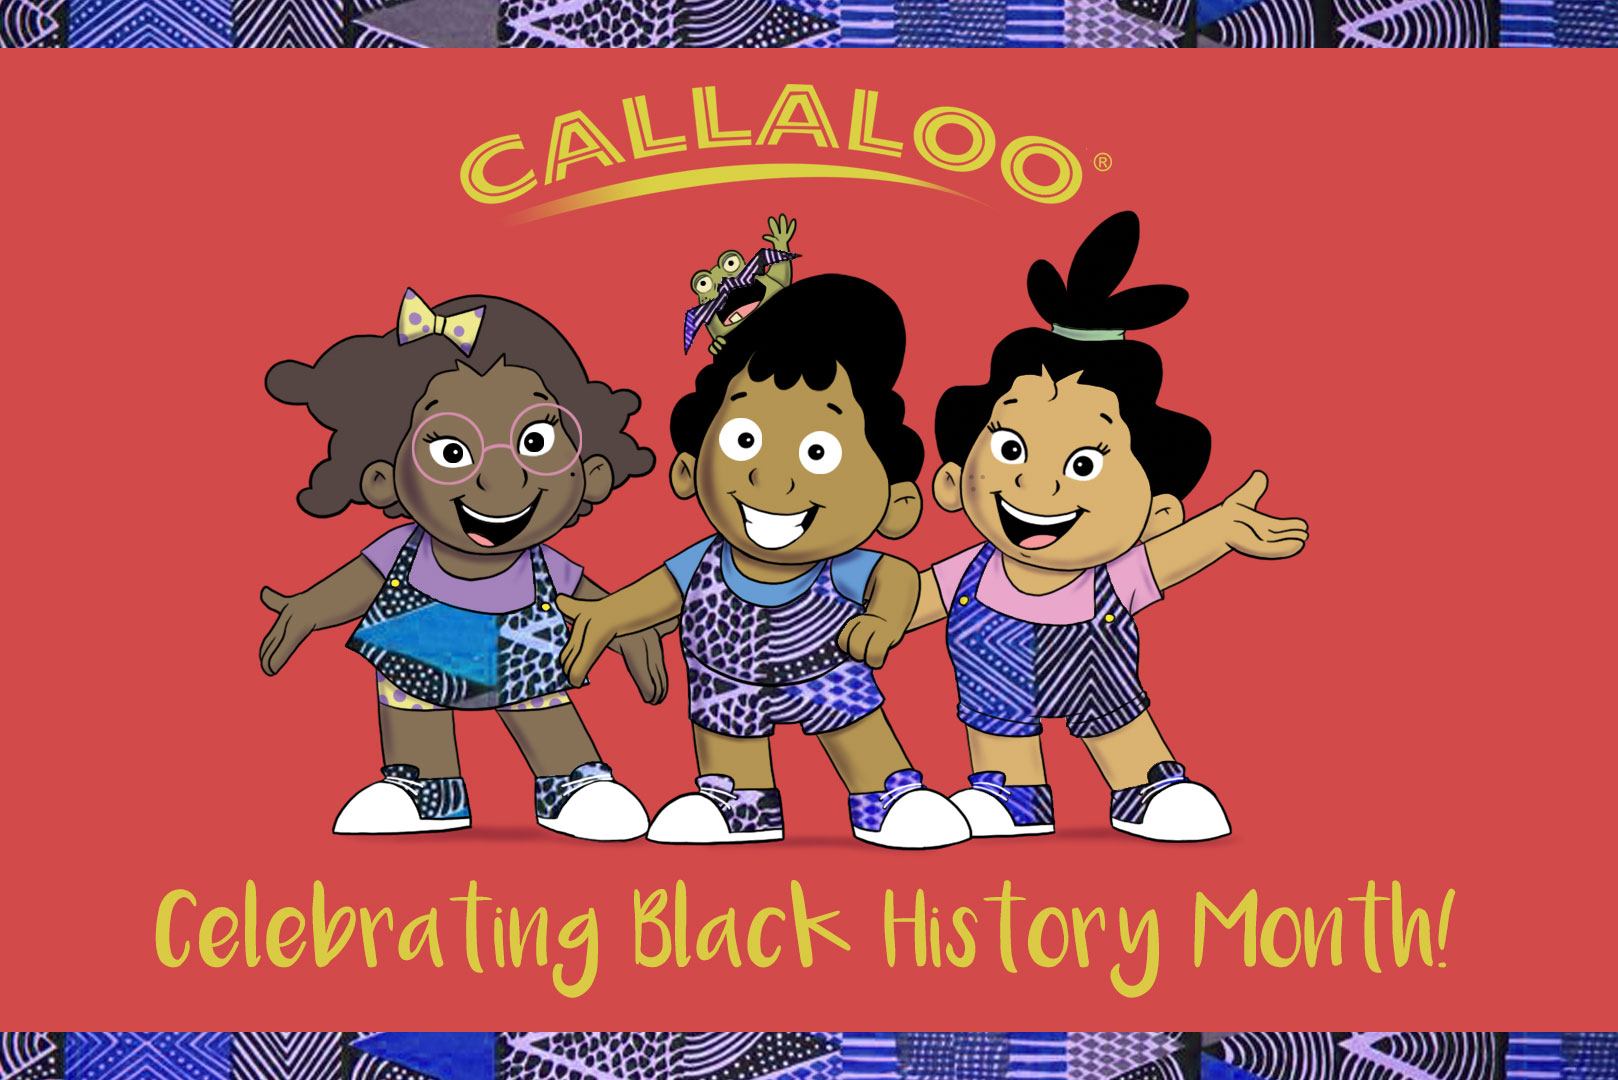 We Celebrate Black History Month!